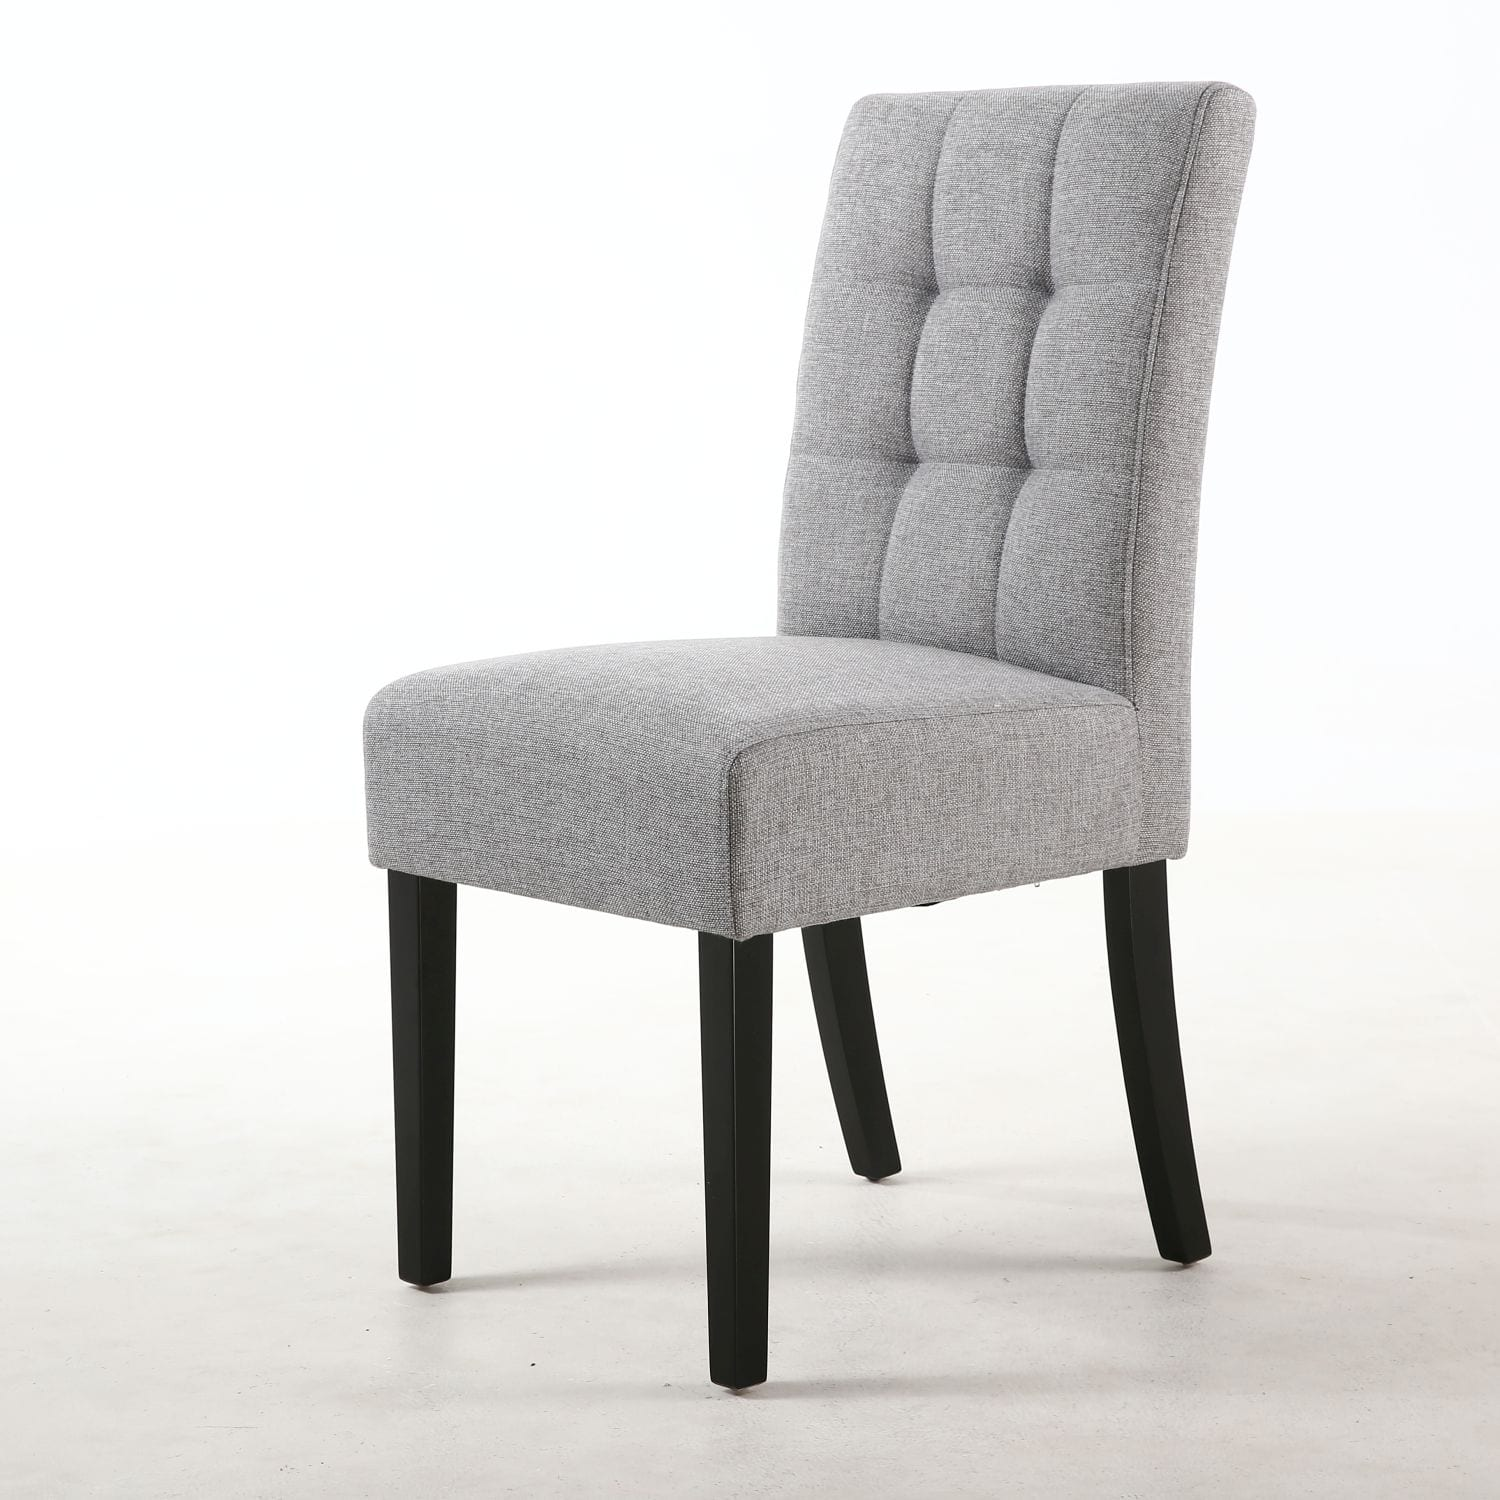 William Stitched Waffle Back Linen Effect Silver Grey Dining Chair with Black Legs